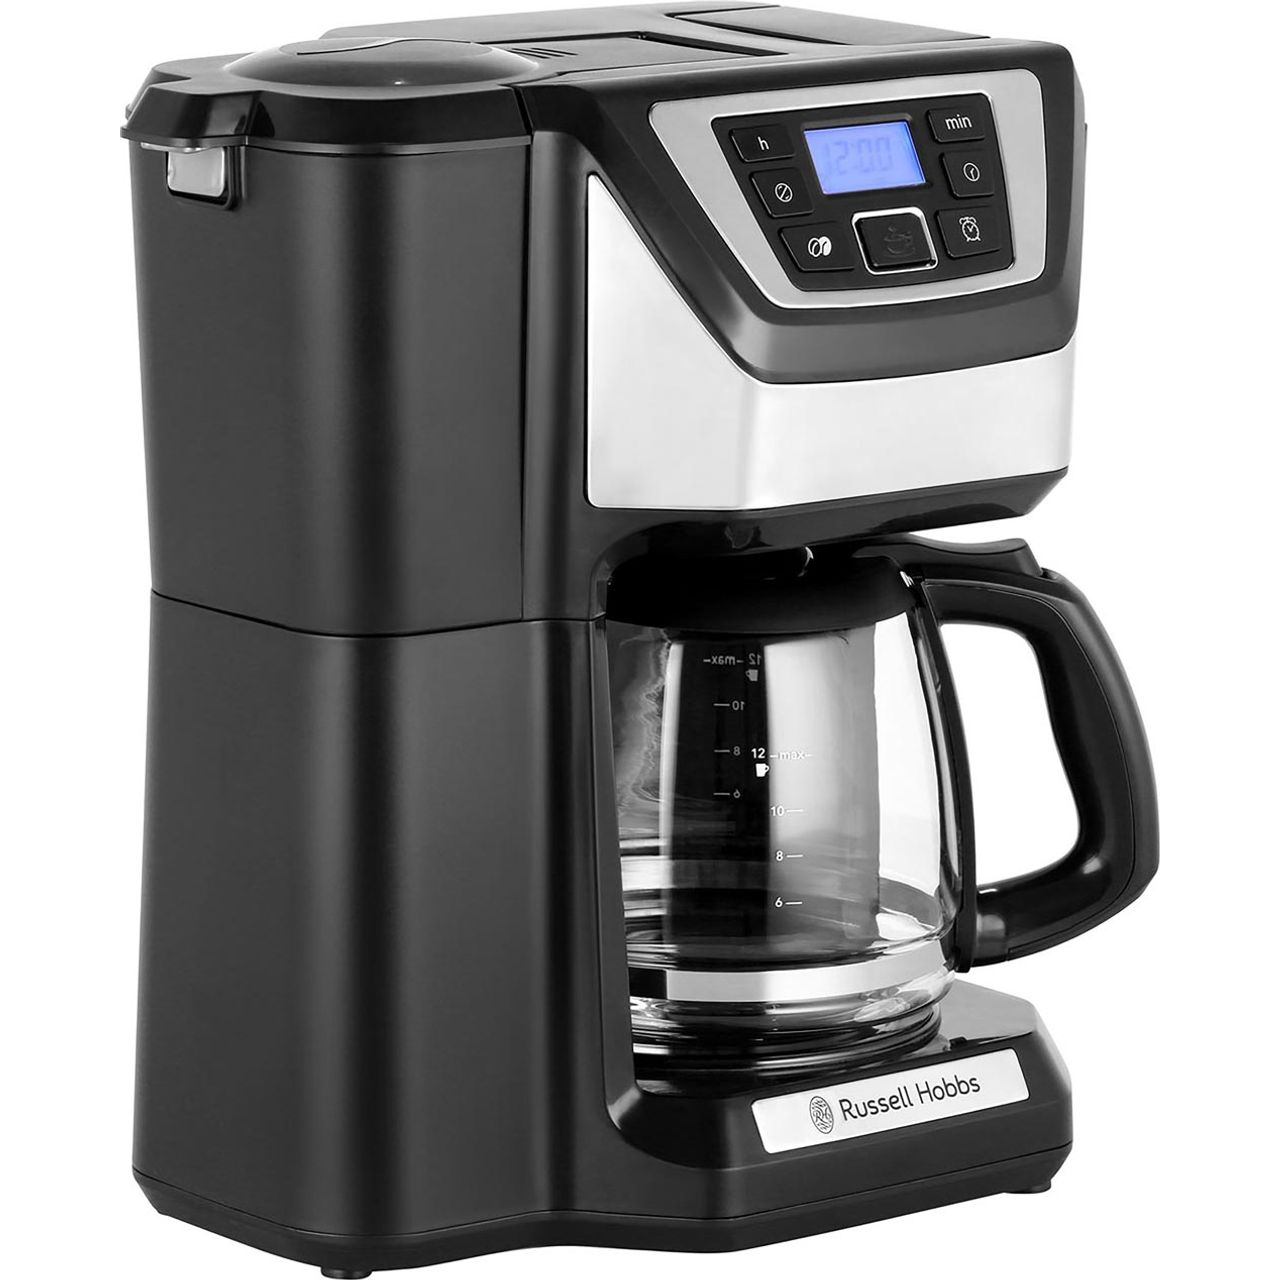 22000 Si Russell Hobbs Filter Coffee Machine Fuel Filters